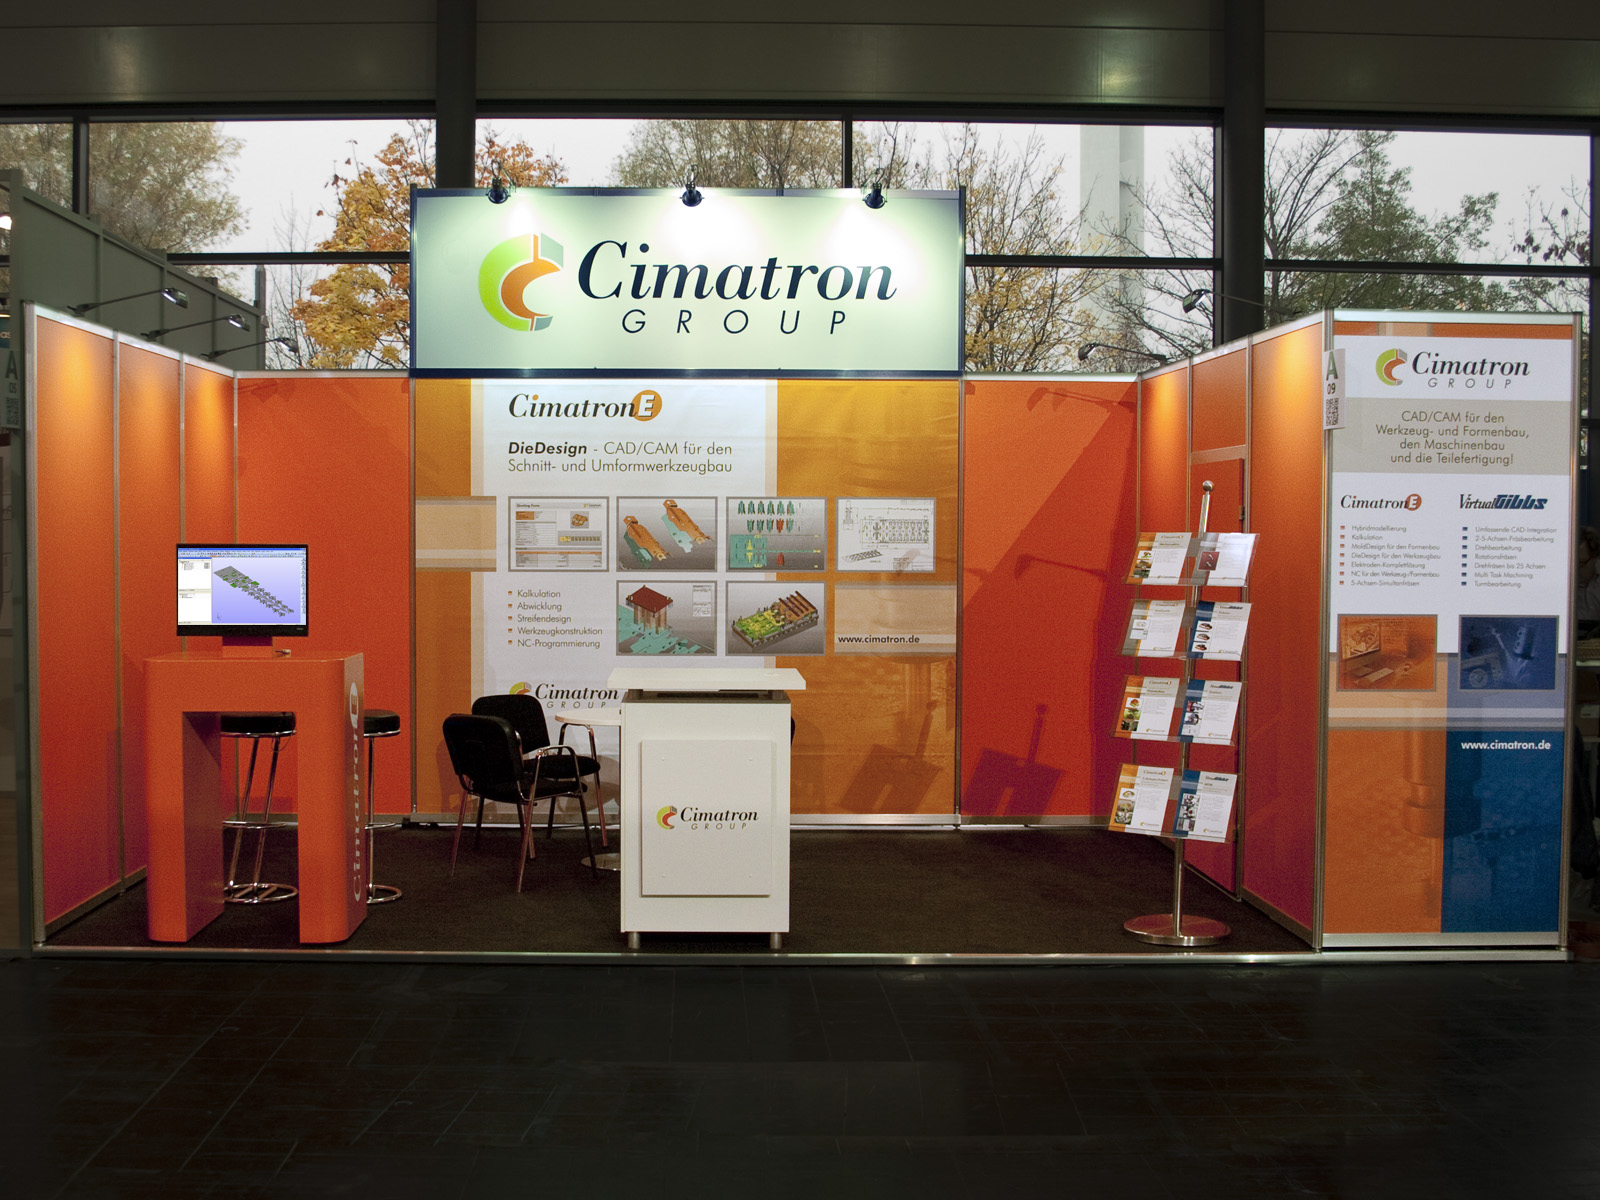 Cimatron at EuroBlec 2012